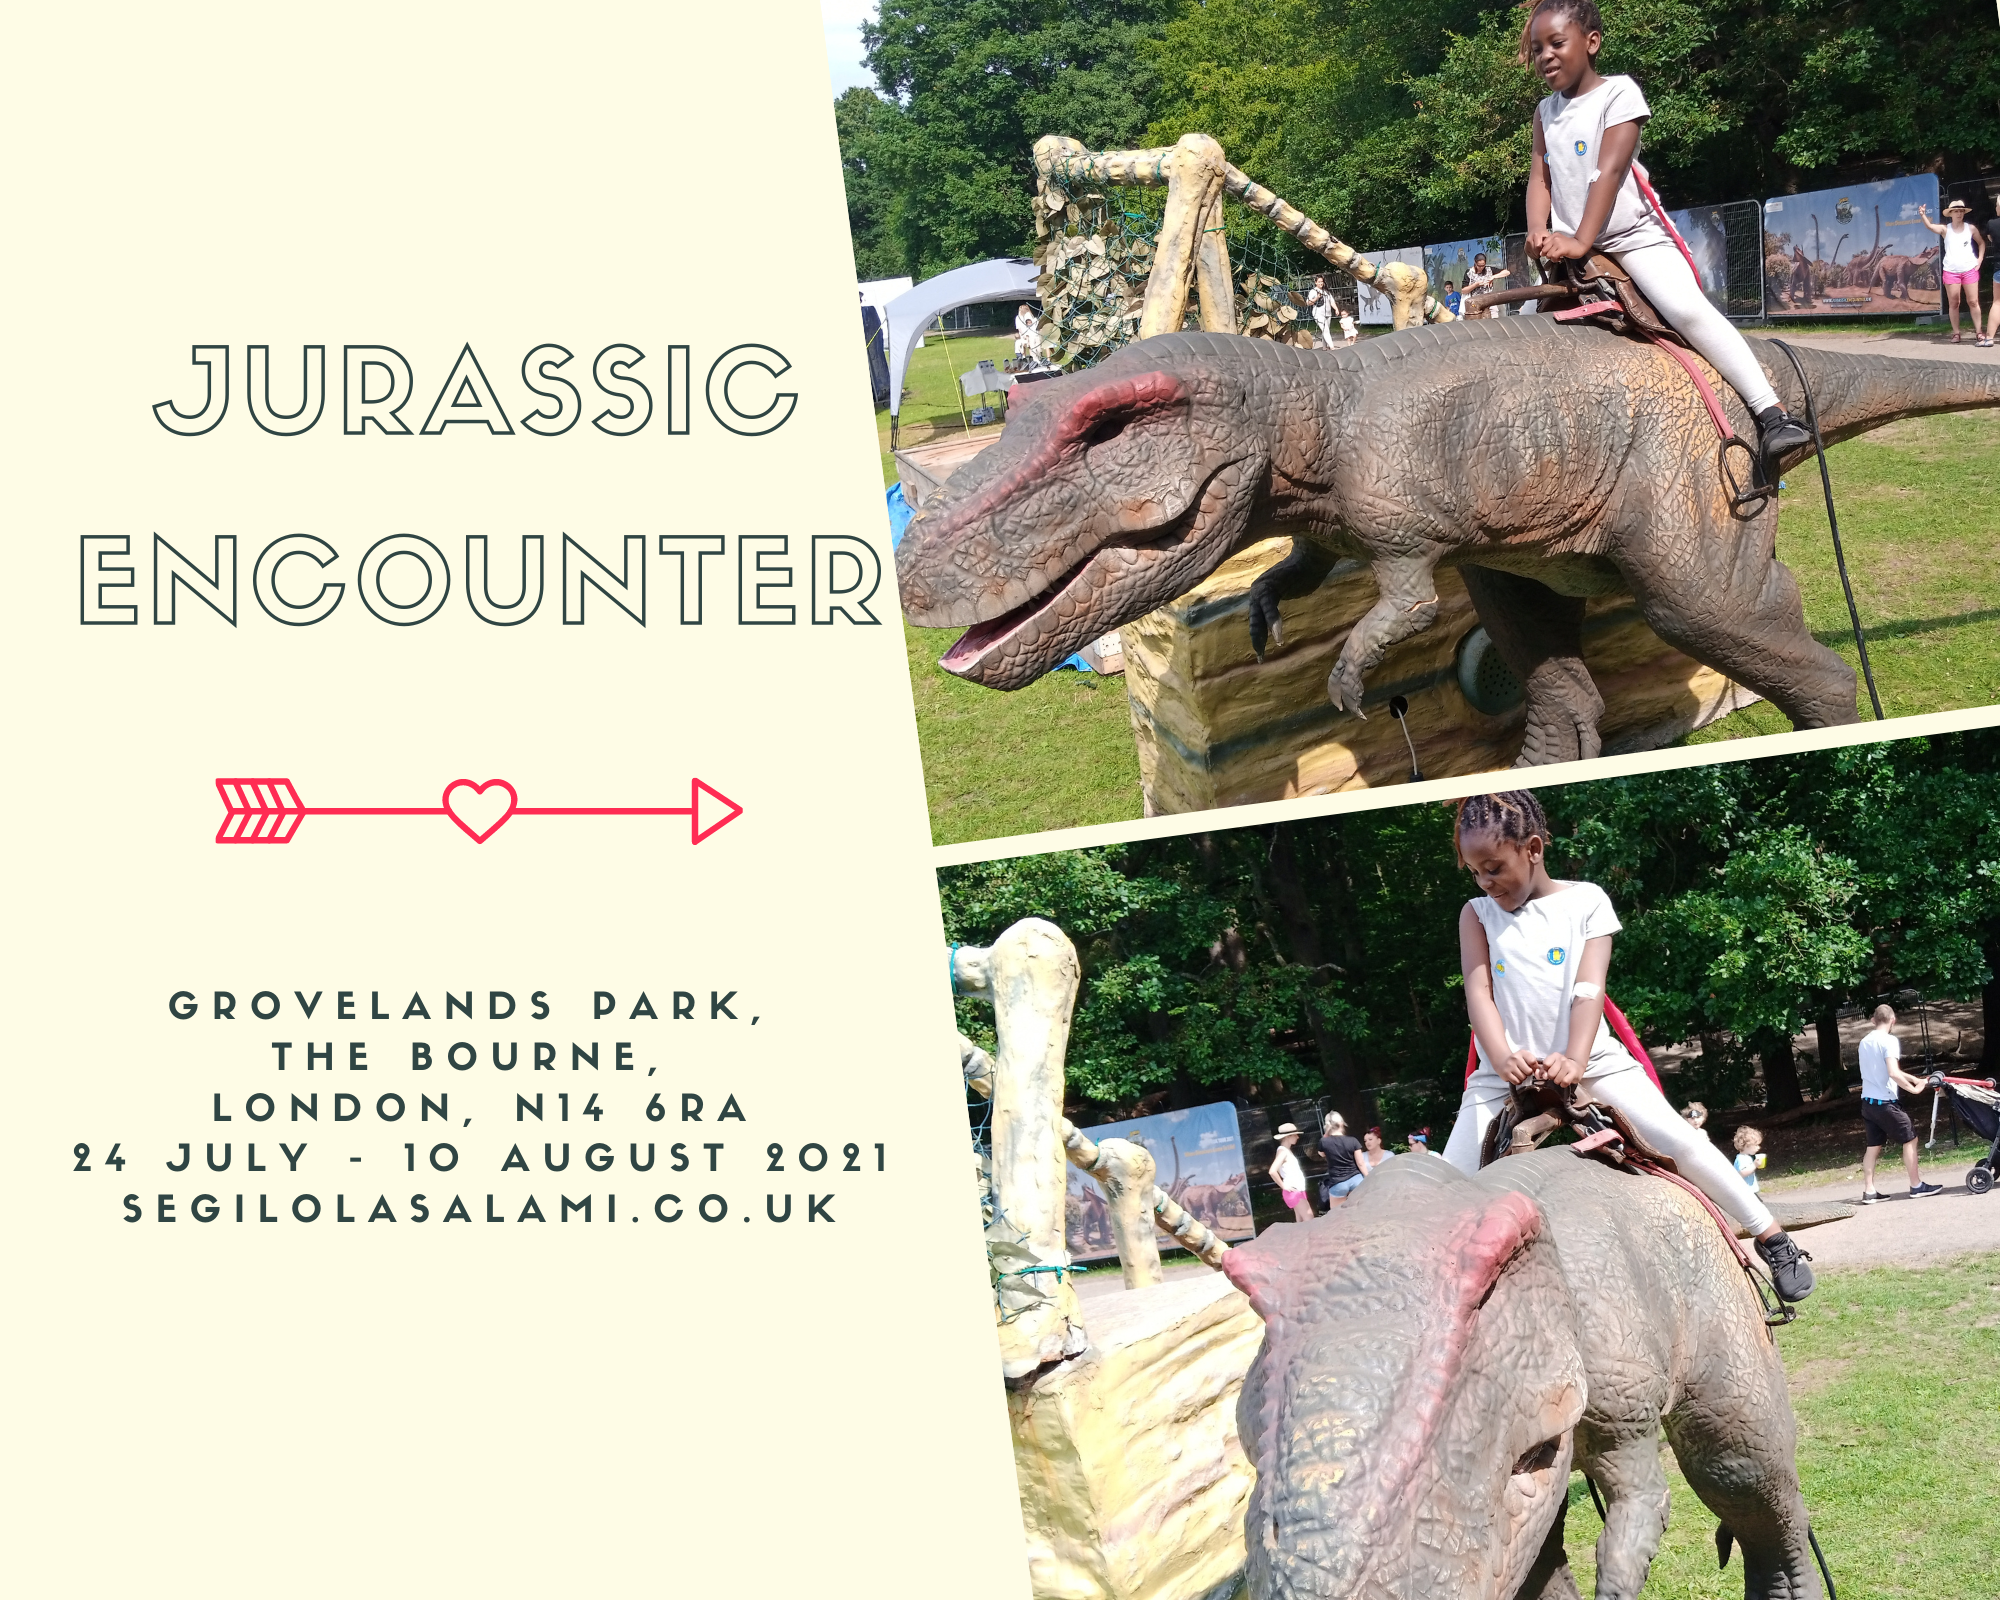 Places to visit with your child in London - JURASSIC ENCOUNTER LONDON 2021